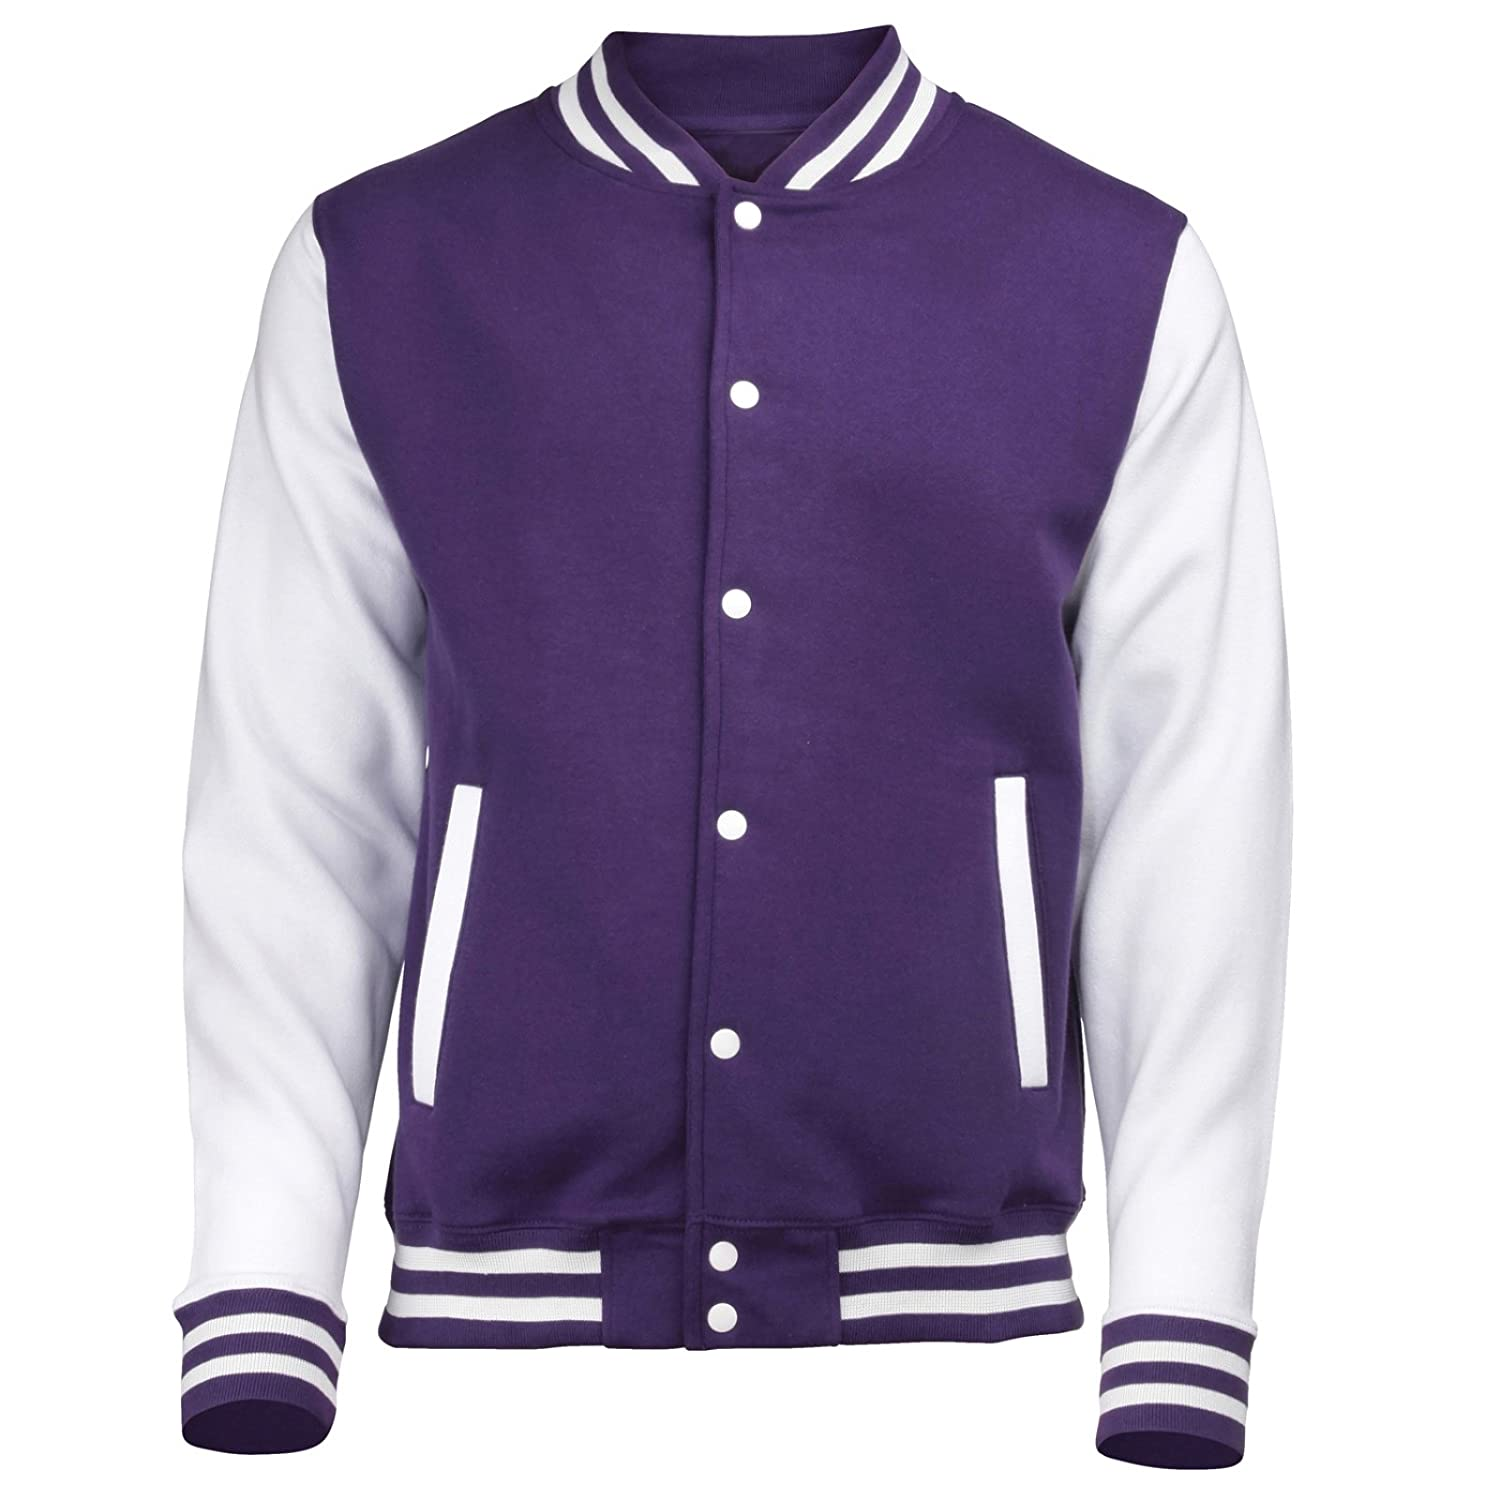 123t Kids Varsity College Jacket